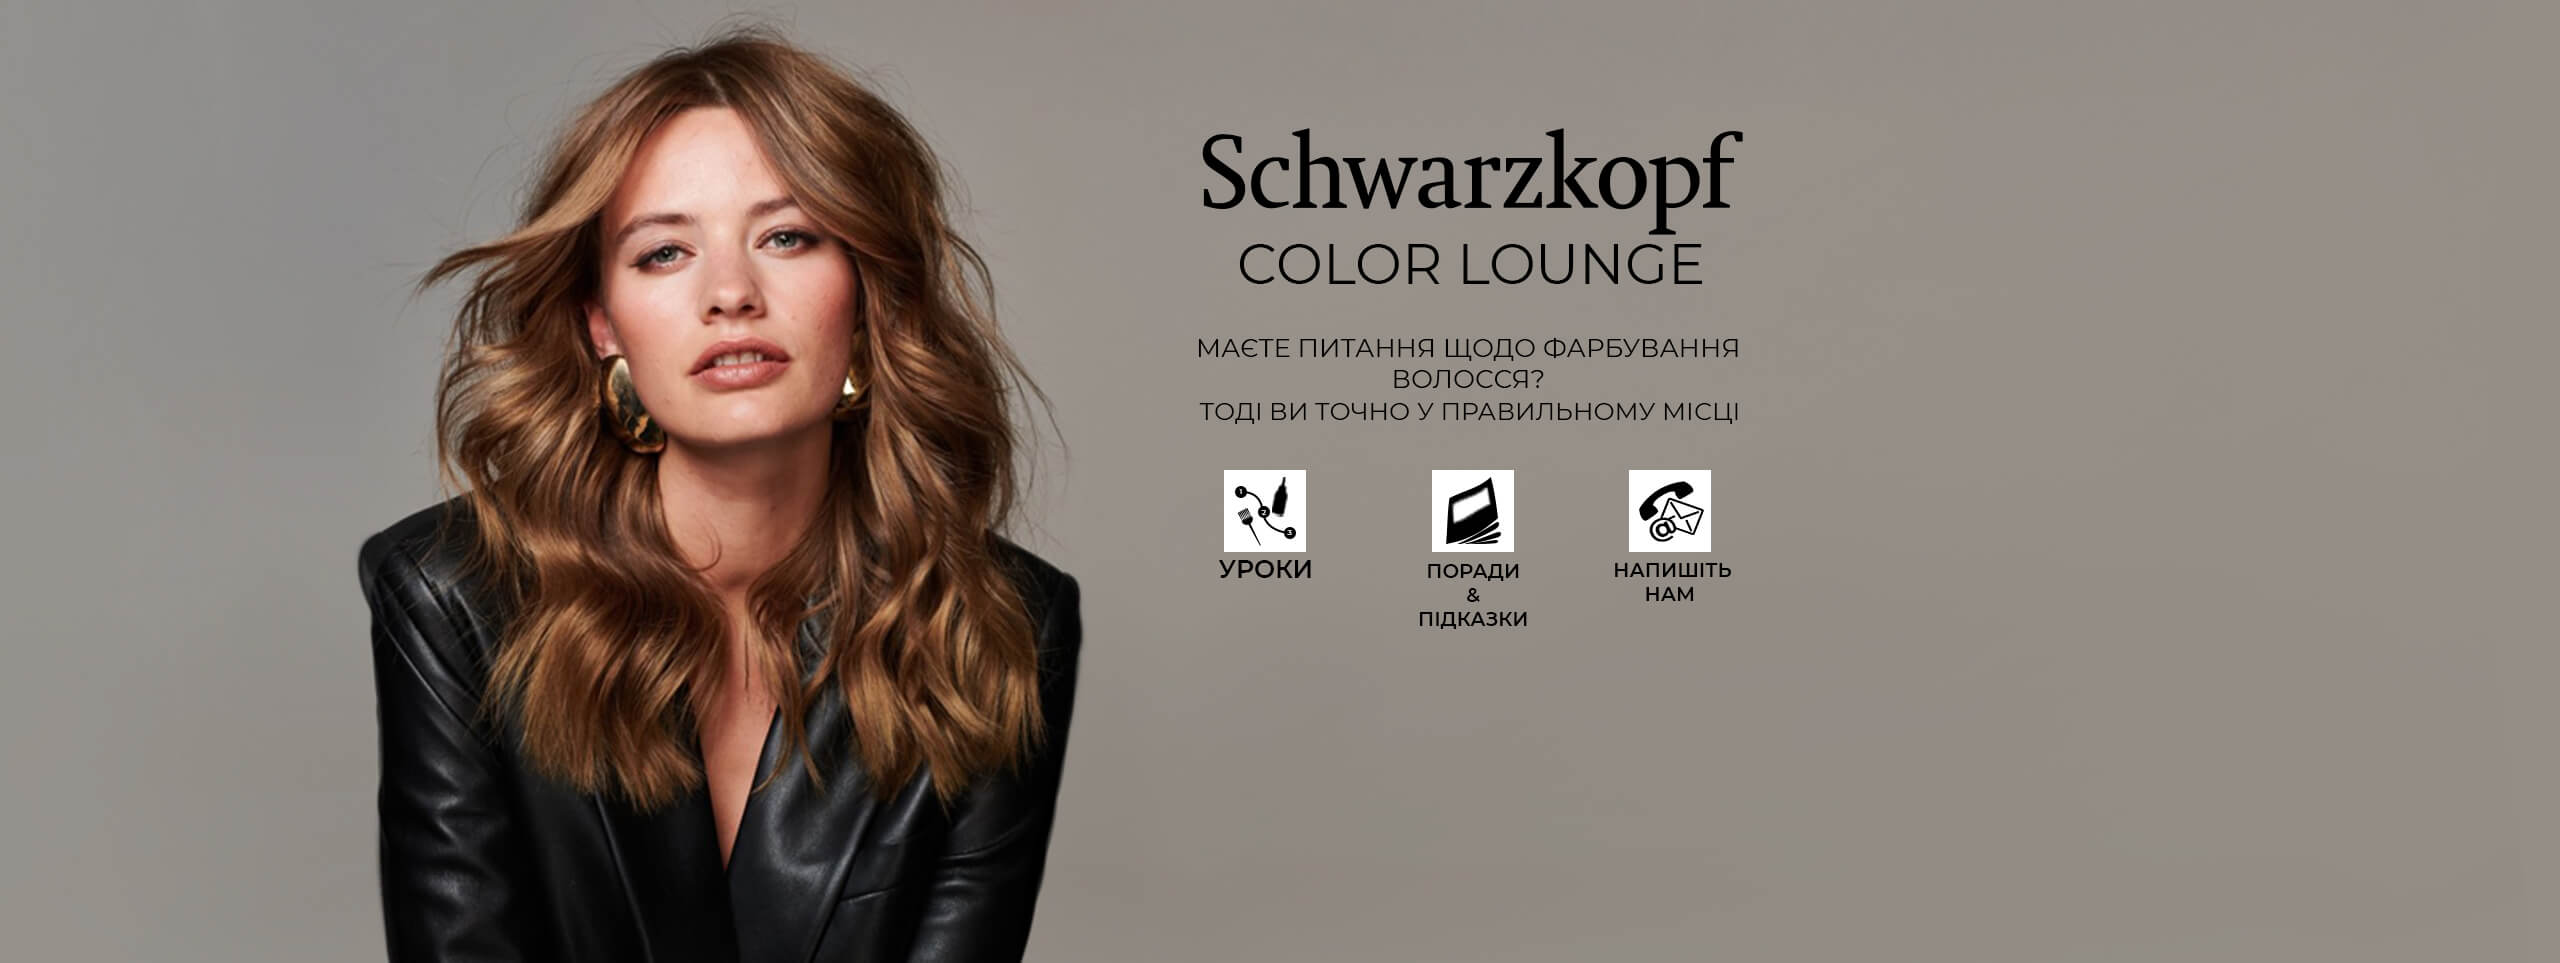 sk_color_lounge_2560x963